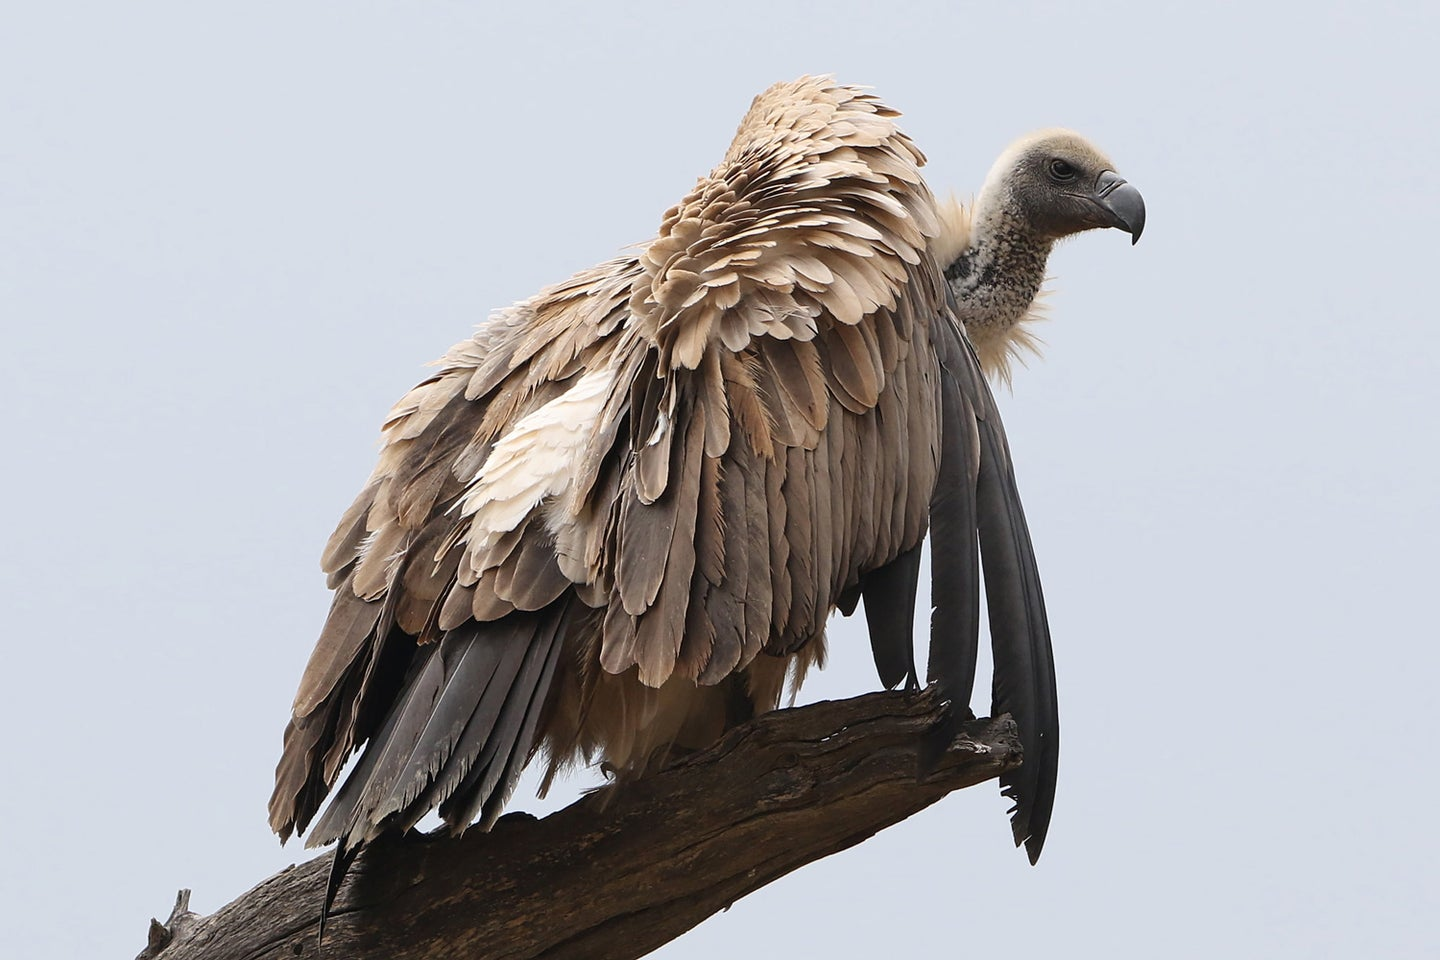 A vulture perched in a tree.